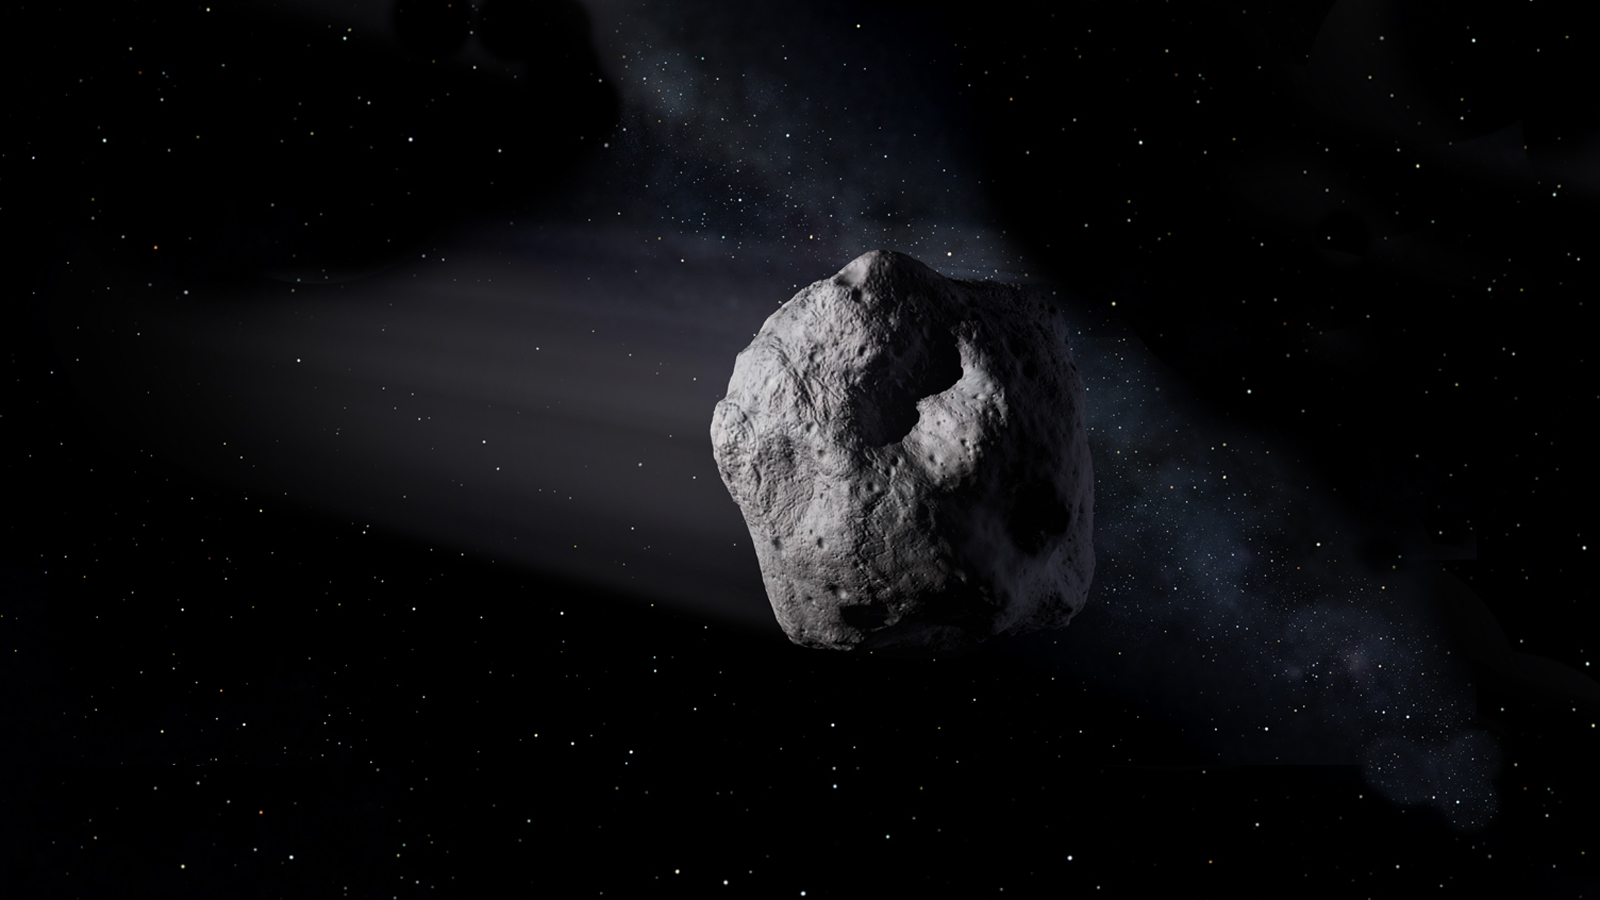 Asteroid Apophis will flyby Earth on April 13, 2029: Here's why NASA is already preparing for it